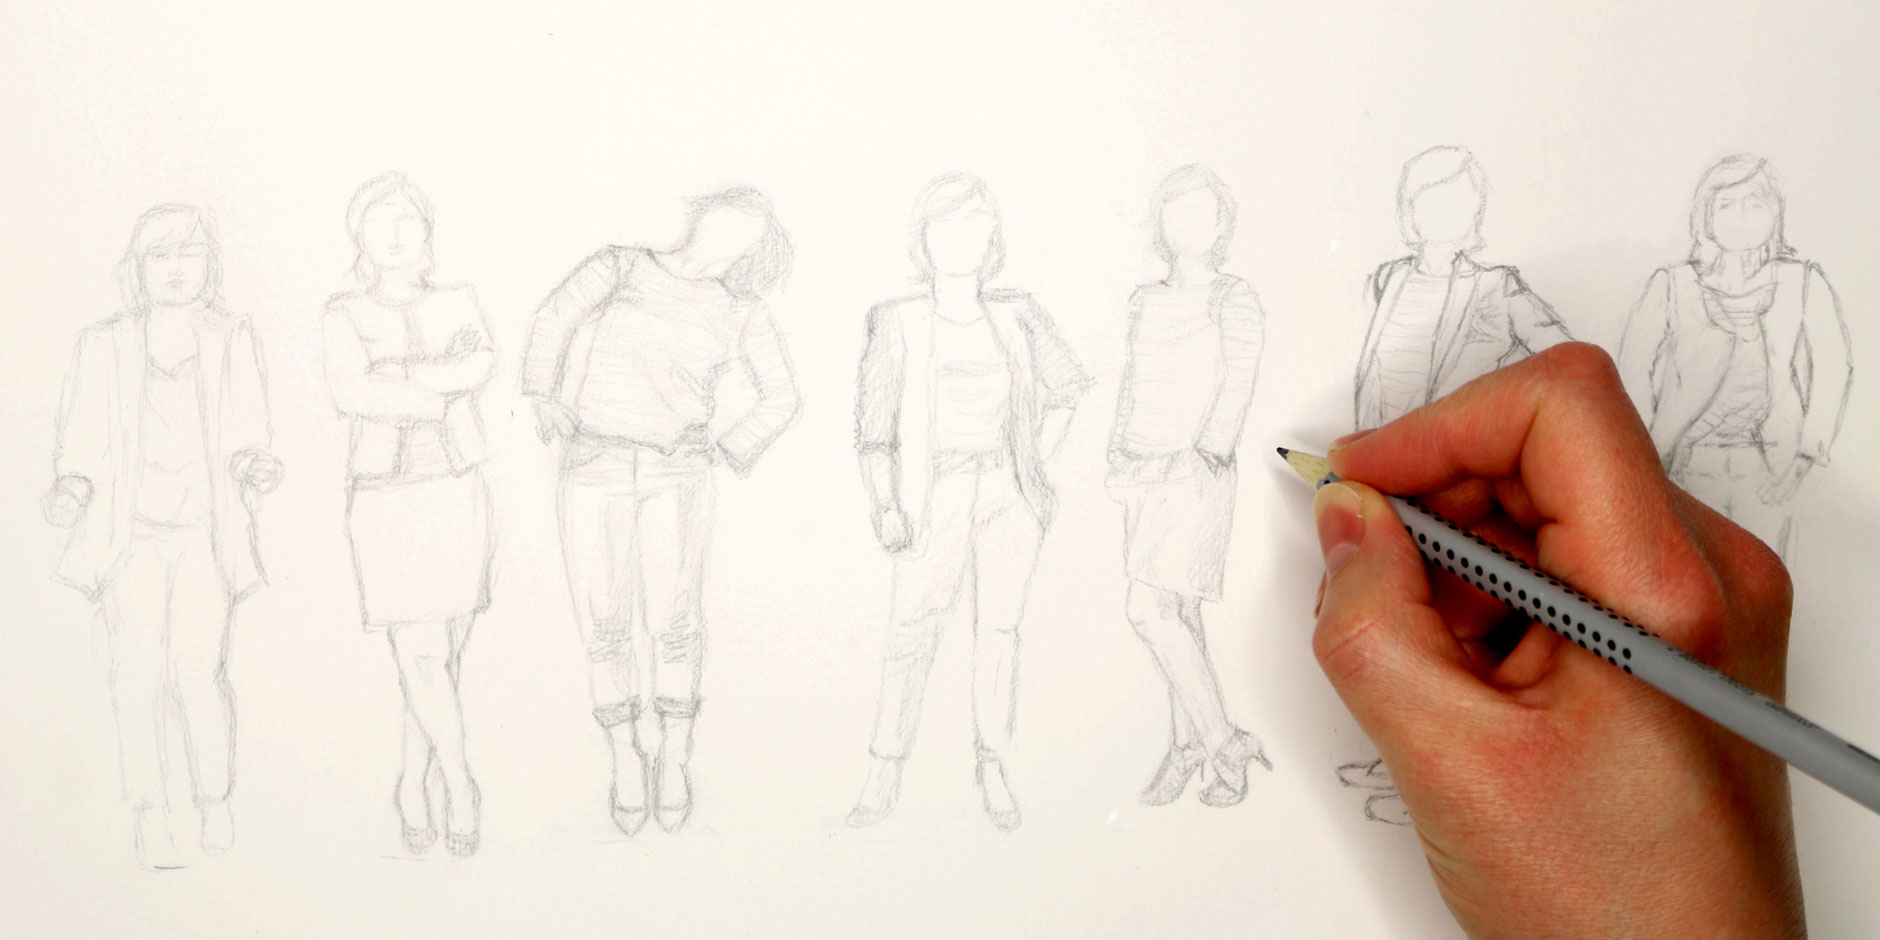 The sketch of the 7 figures with breton shirts, with pencil |  7 Ways to Wear a Breton Shirt , by The Daily Atelier